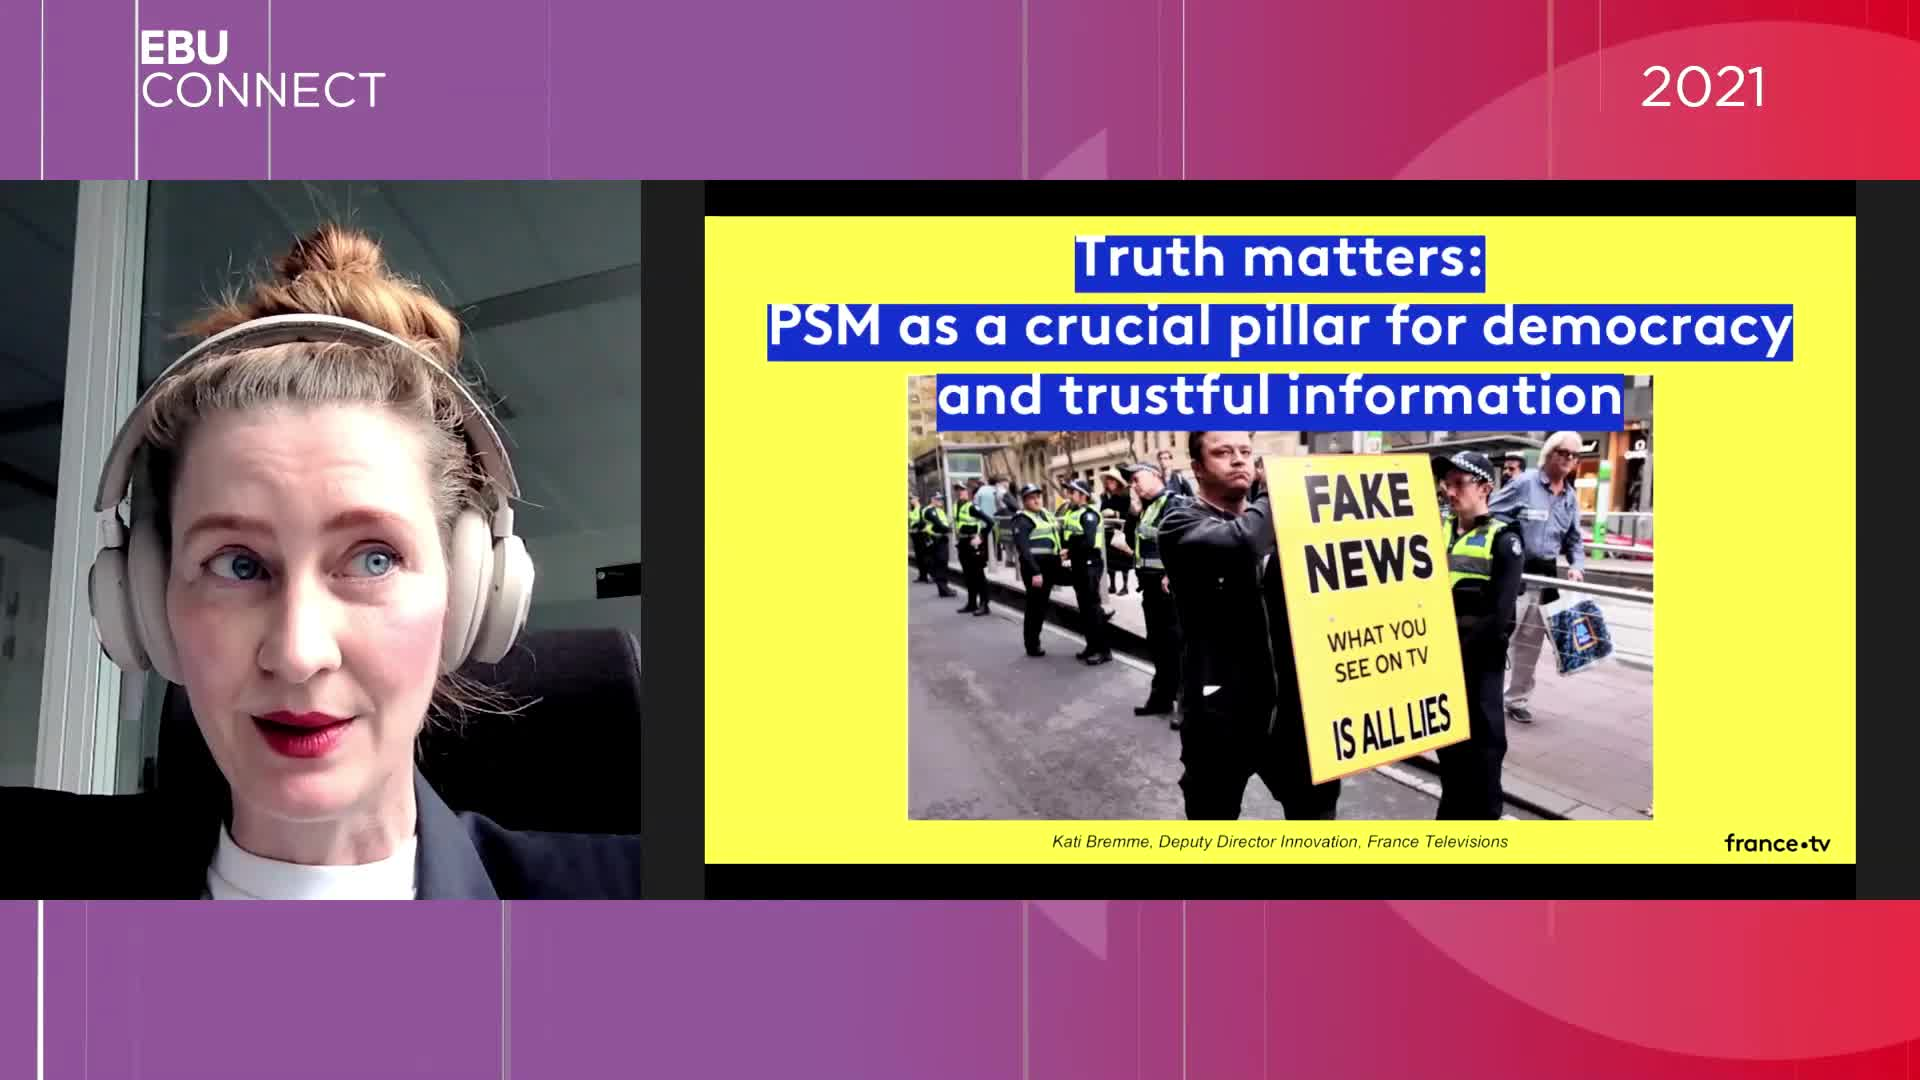 Truth Matters: Public service media as a crucial pillar for democracy and trustful information